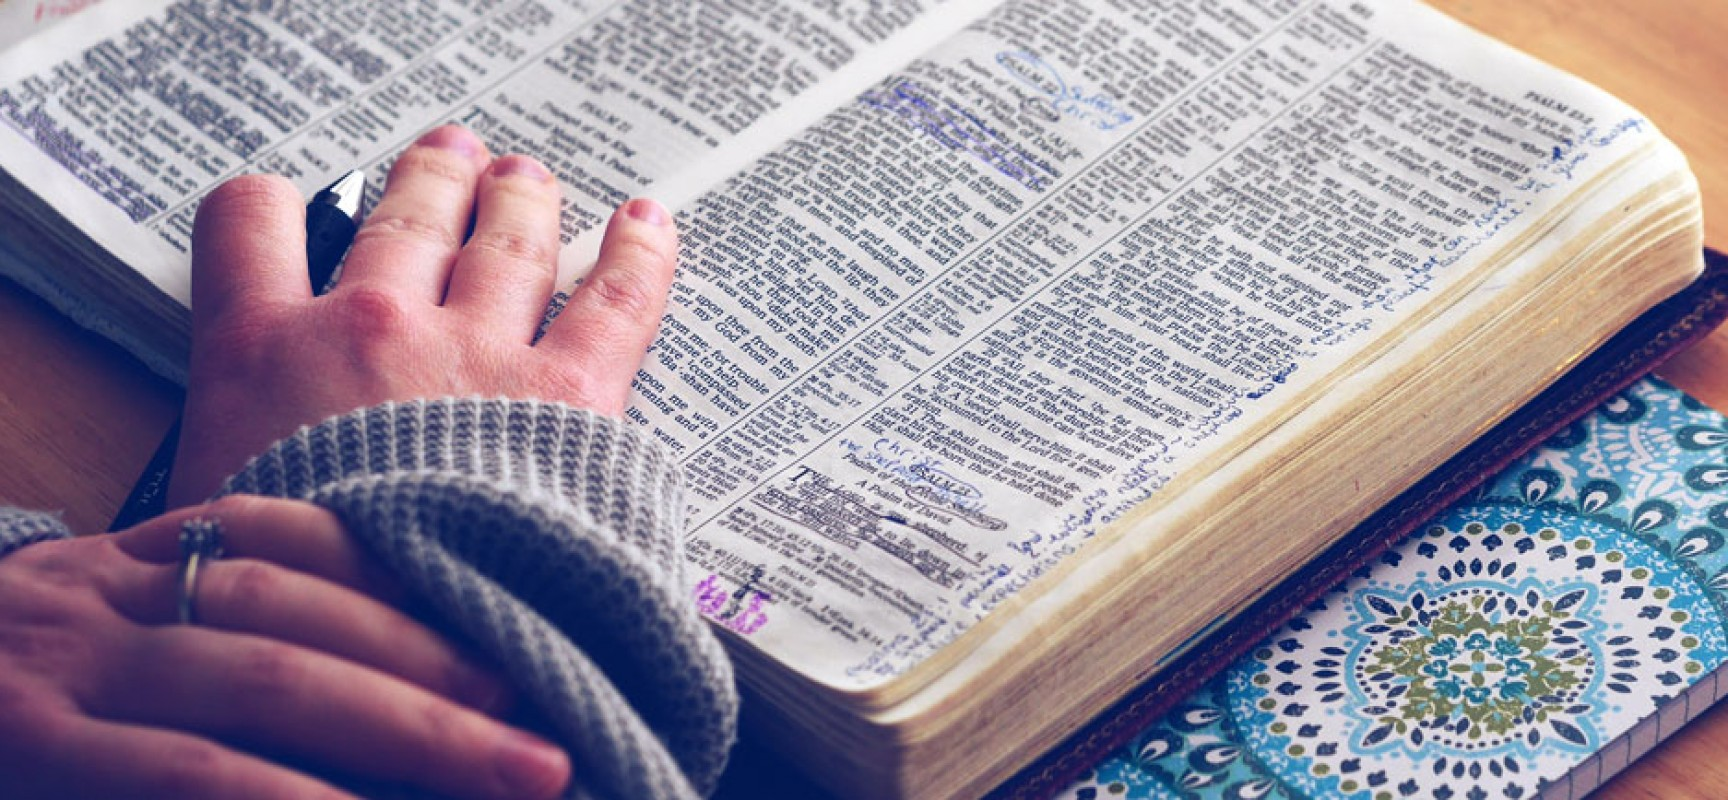 Calvary Houston Church: The bible is the inspiration from God